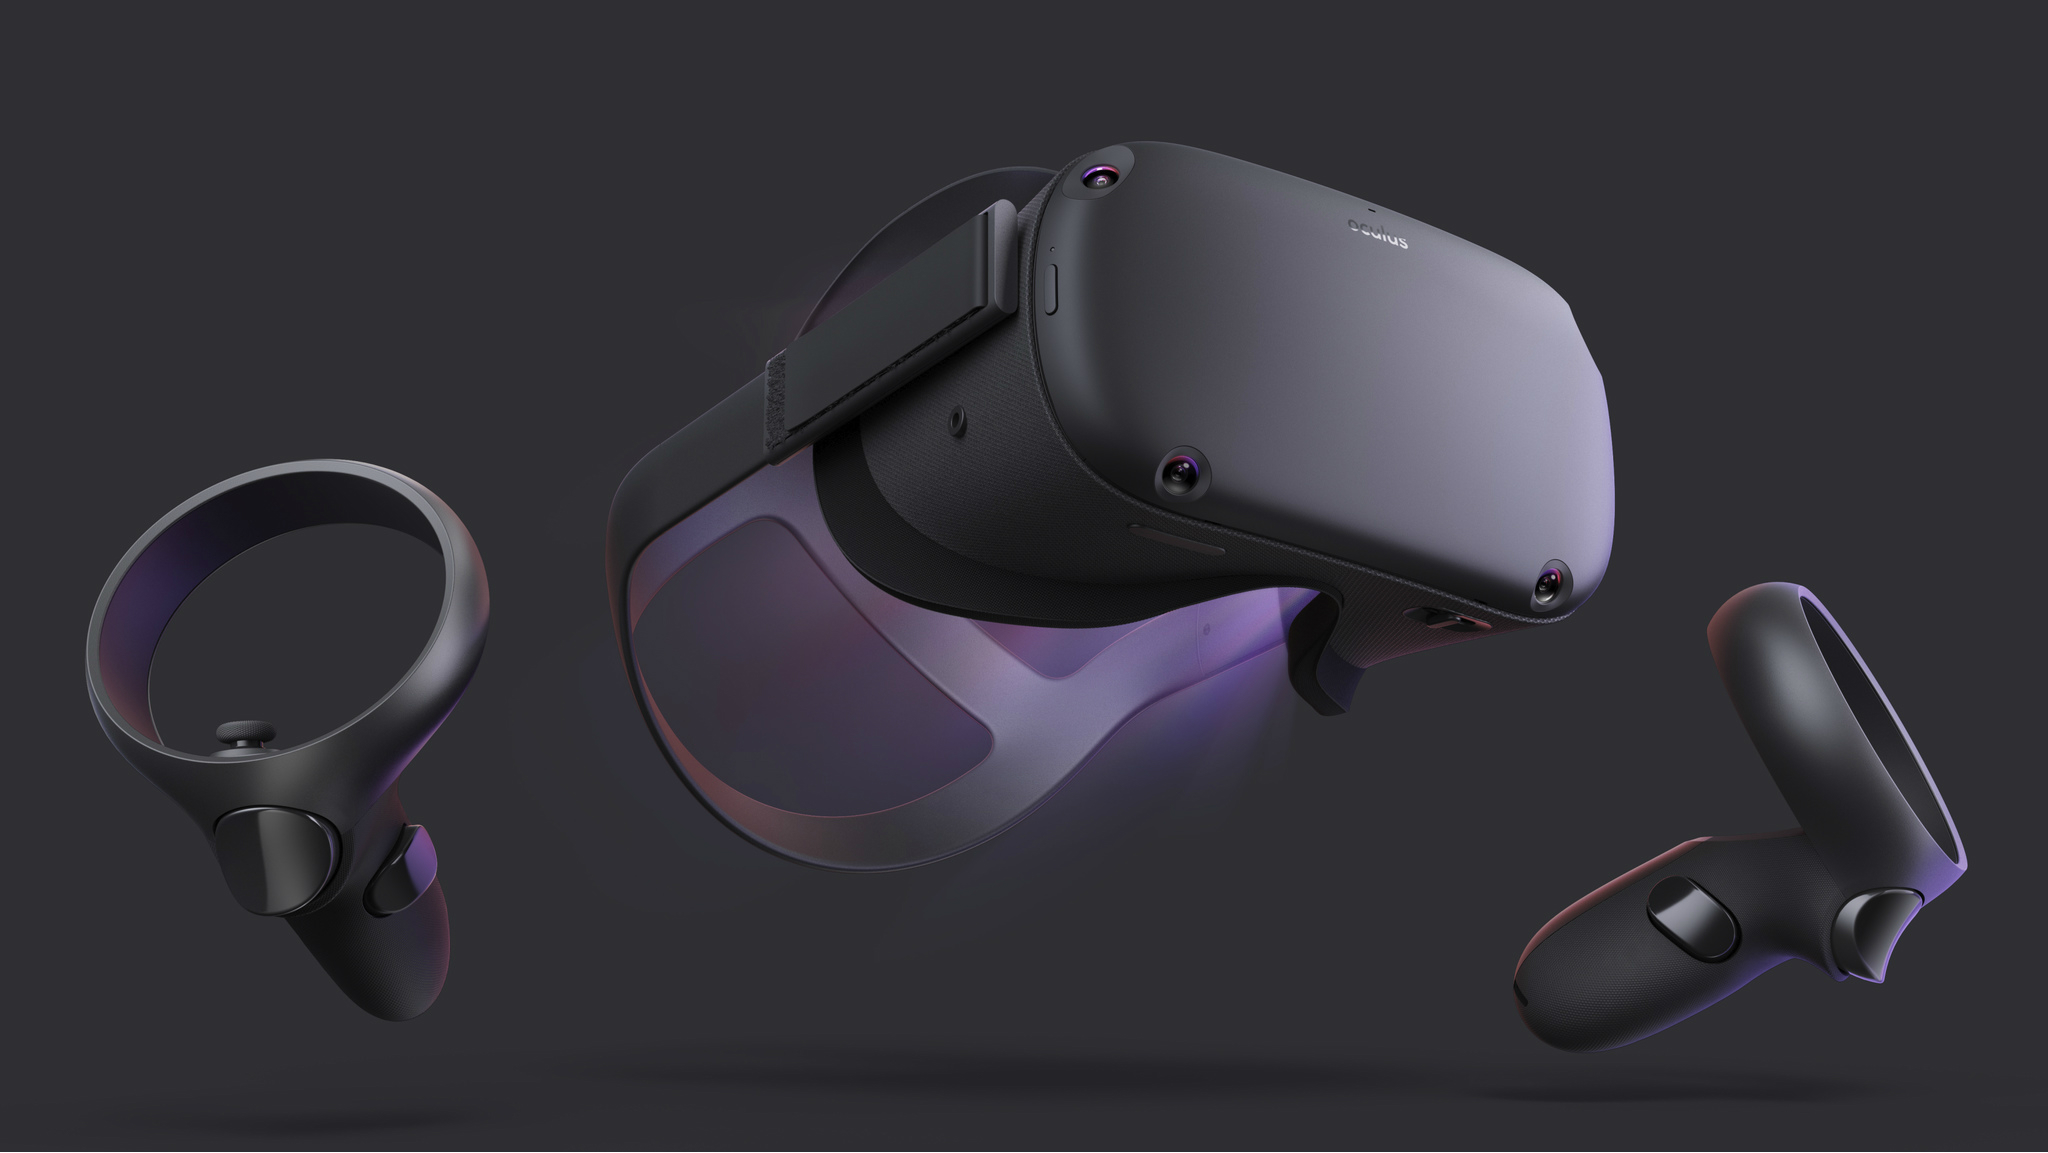 Oculus Quest: New all-in-one standalone VR headset ...